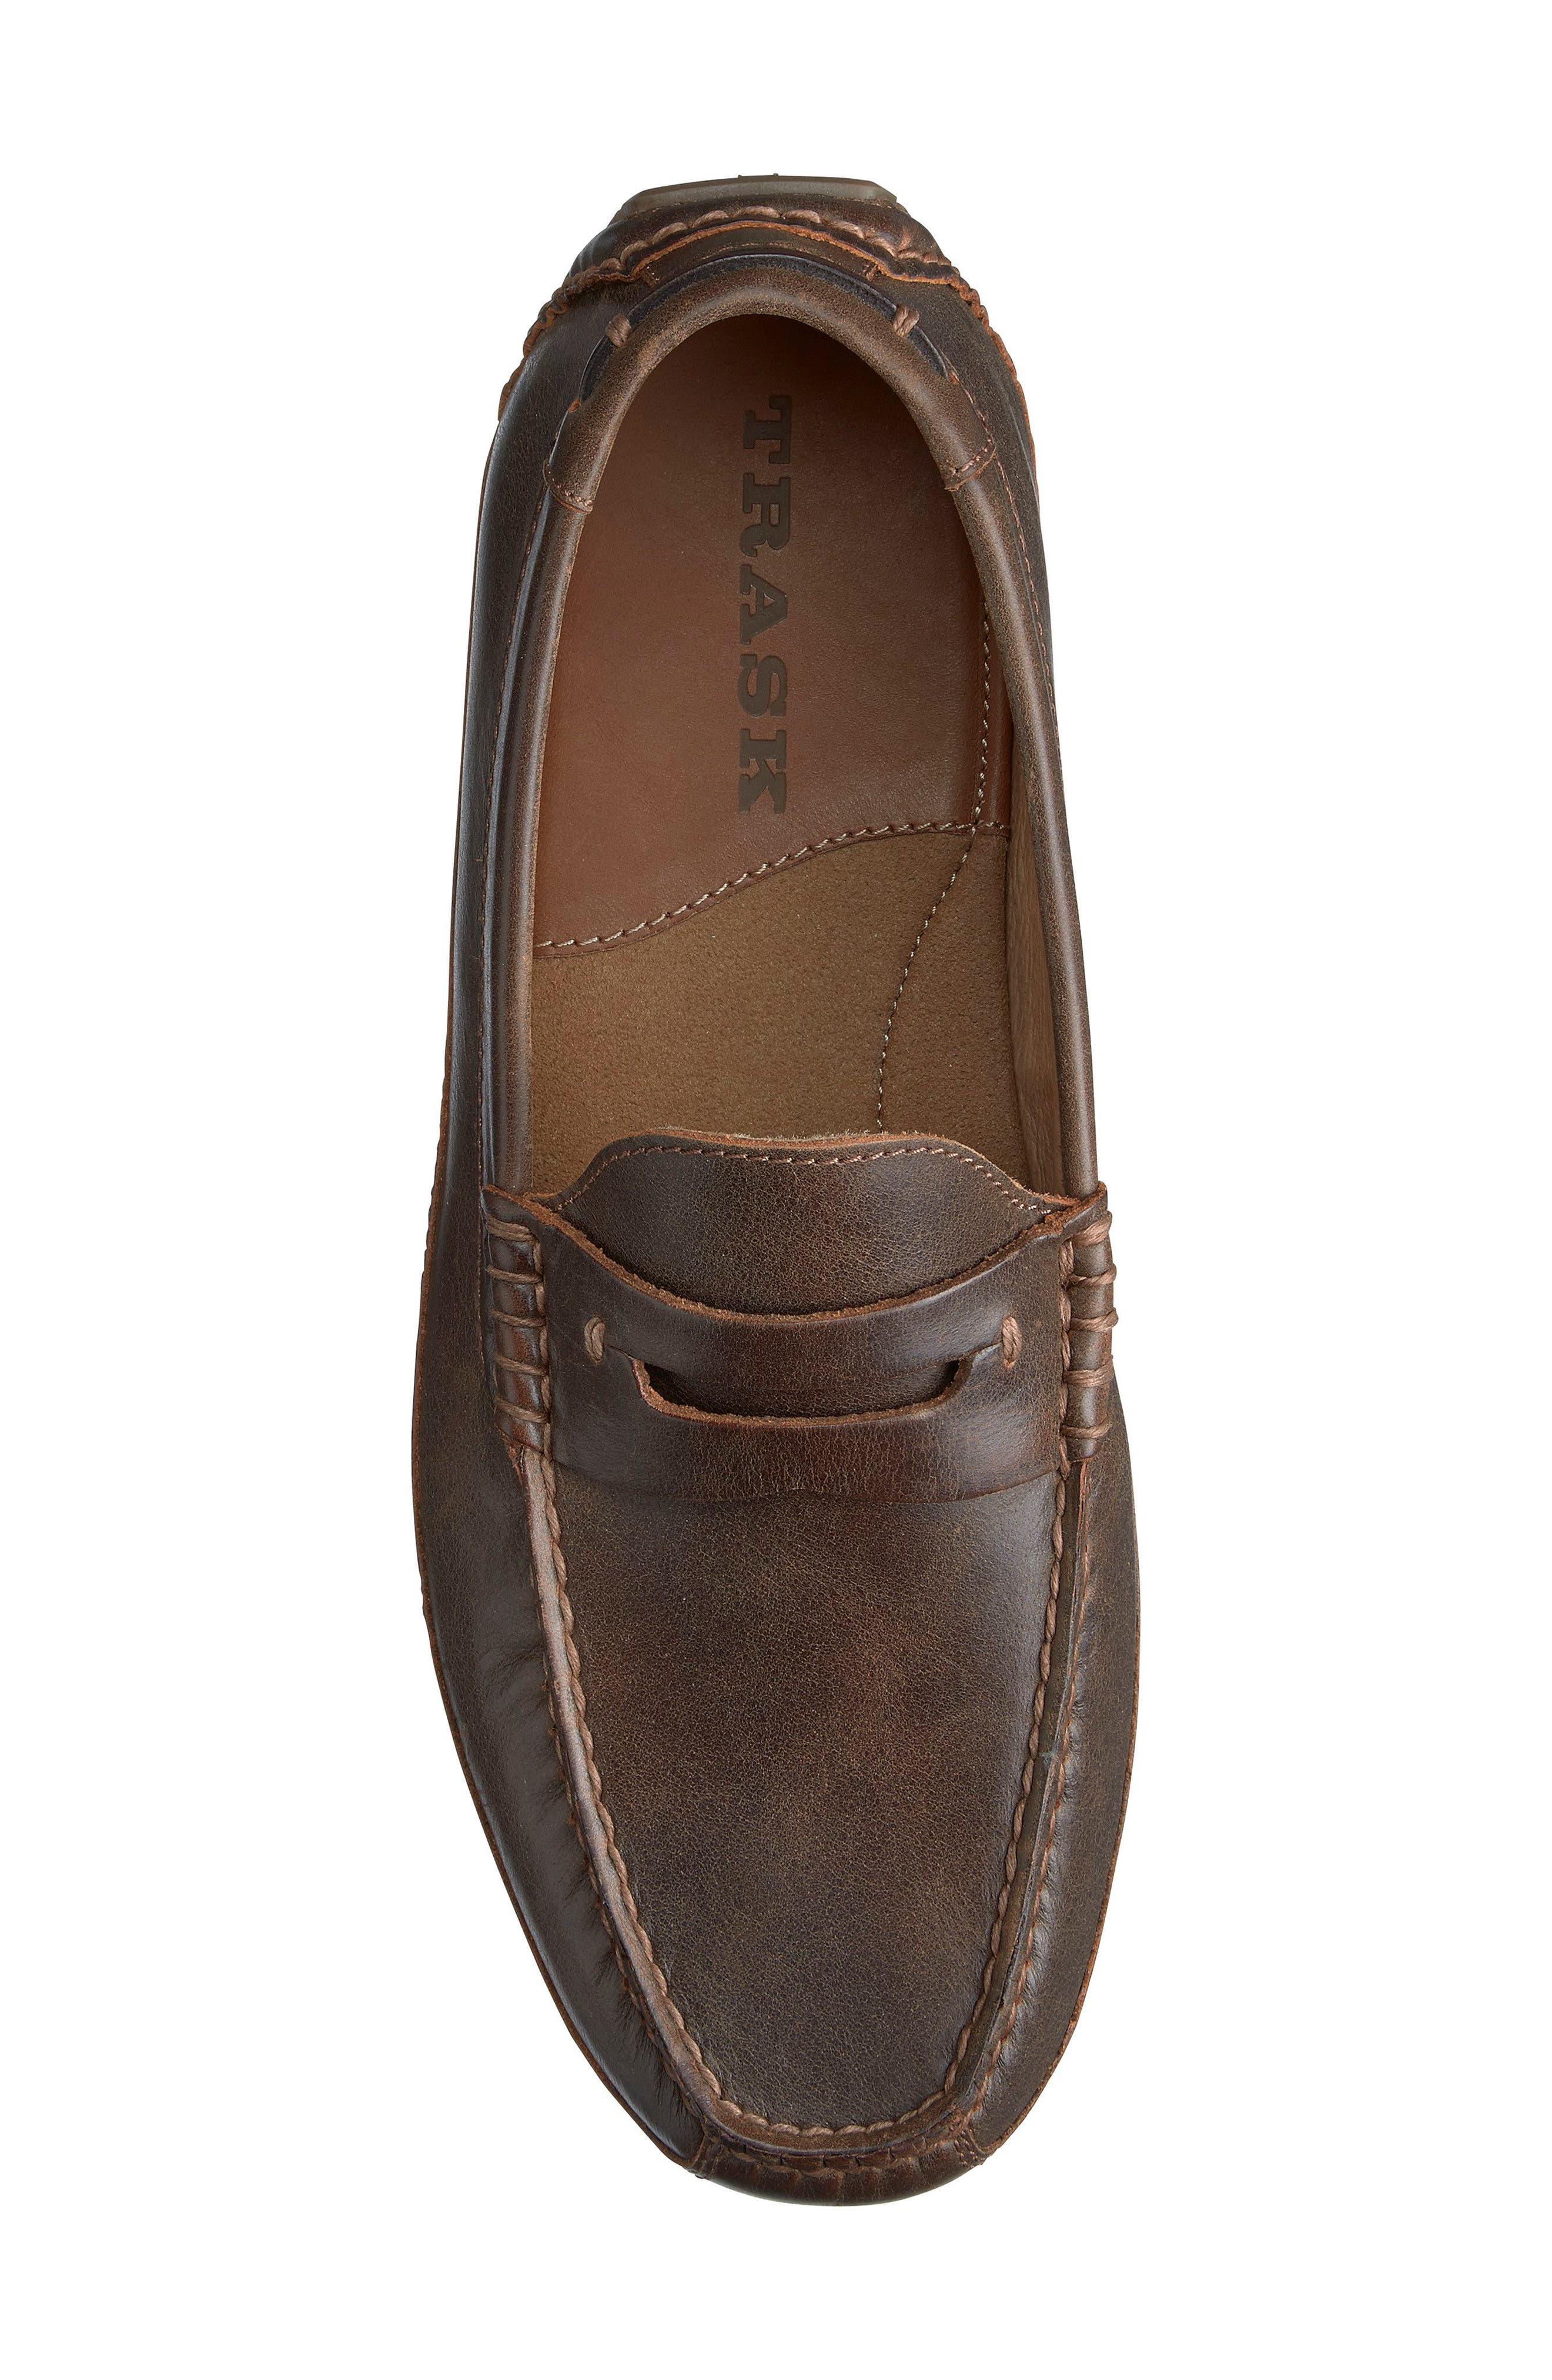 Dawson Water Resistant Driving Loafer,                             Alternate thumbnail 5, color,                             DARK BROWN LEATHER